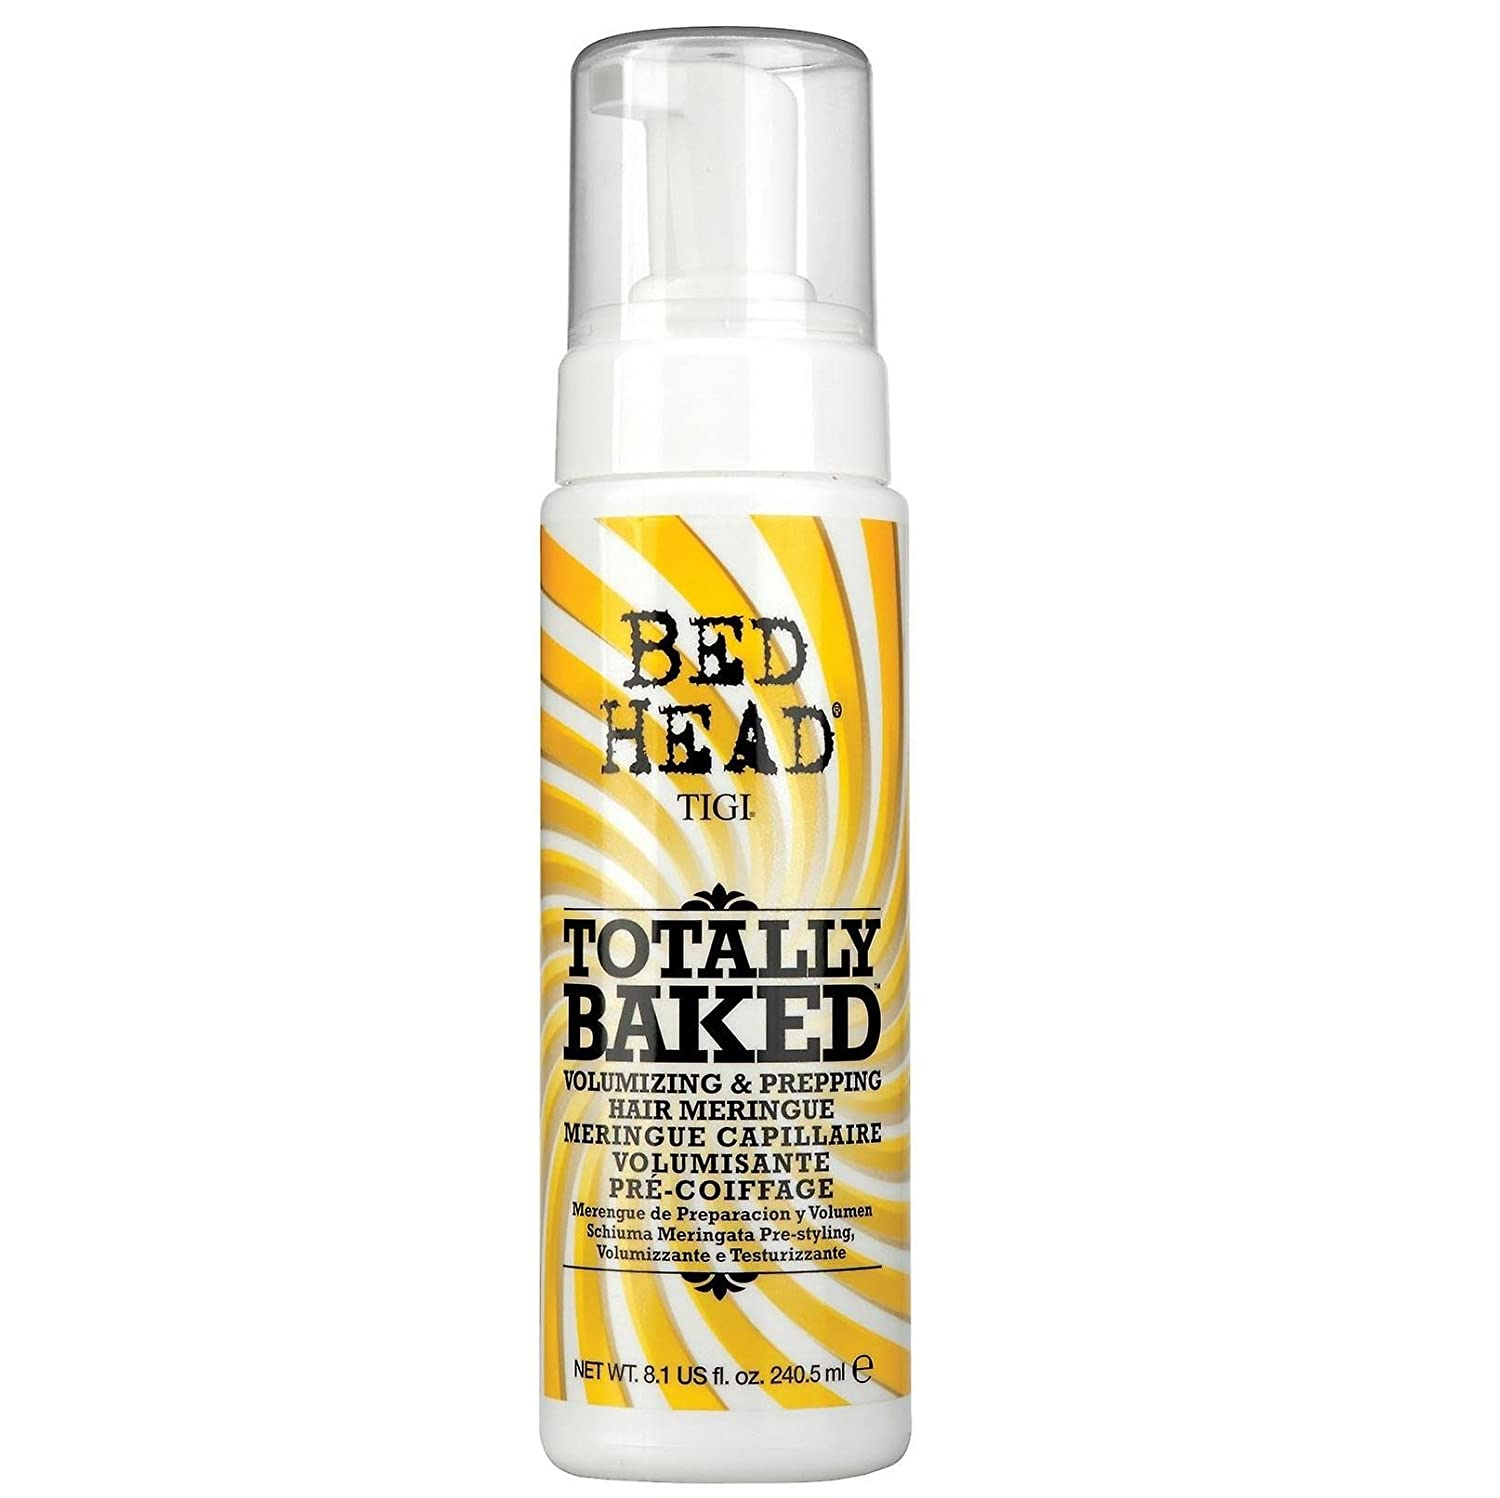 Bed Head Totally Baked Volumizing & Prepping Hair Meringue by TIGI for Unisex - 7 oz Styler 140370 STYLTOTALLYBAKED207